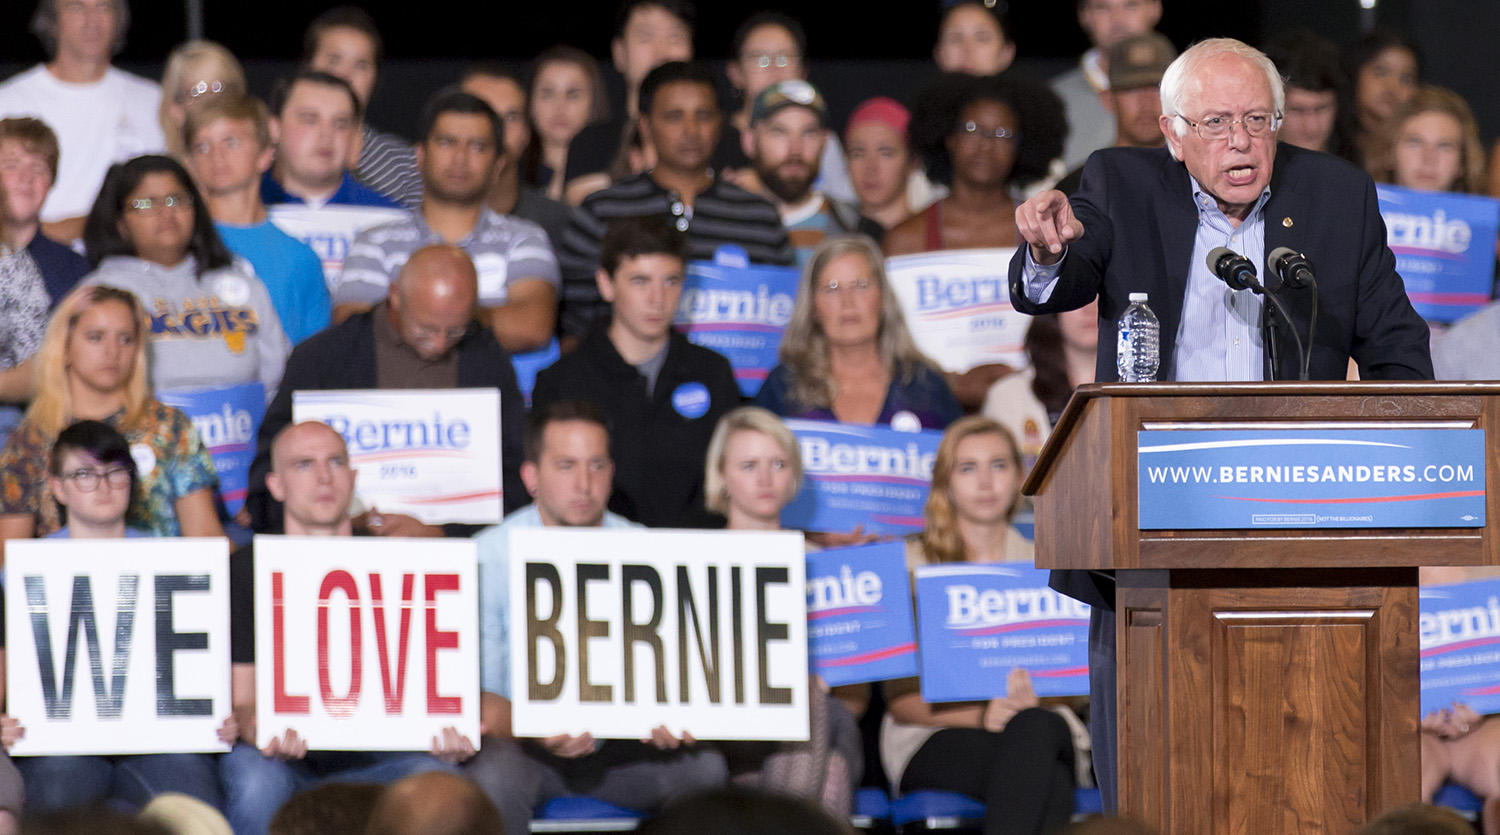 Democratic presidential candidate Sen. Bernie Sanders, I-Vt., speaks during a rally at the Greensboro Coliseum Special Events Center in Greensboro, N.C., Sunday, Sept. 13, 2015. (AP Photo/Rob Brown)